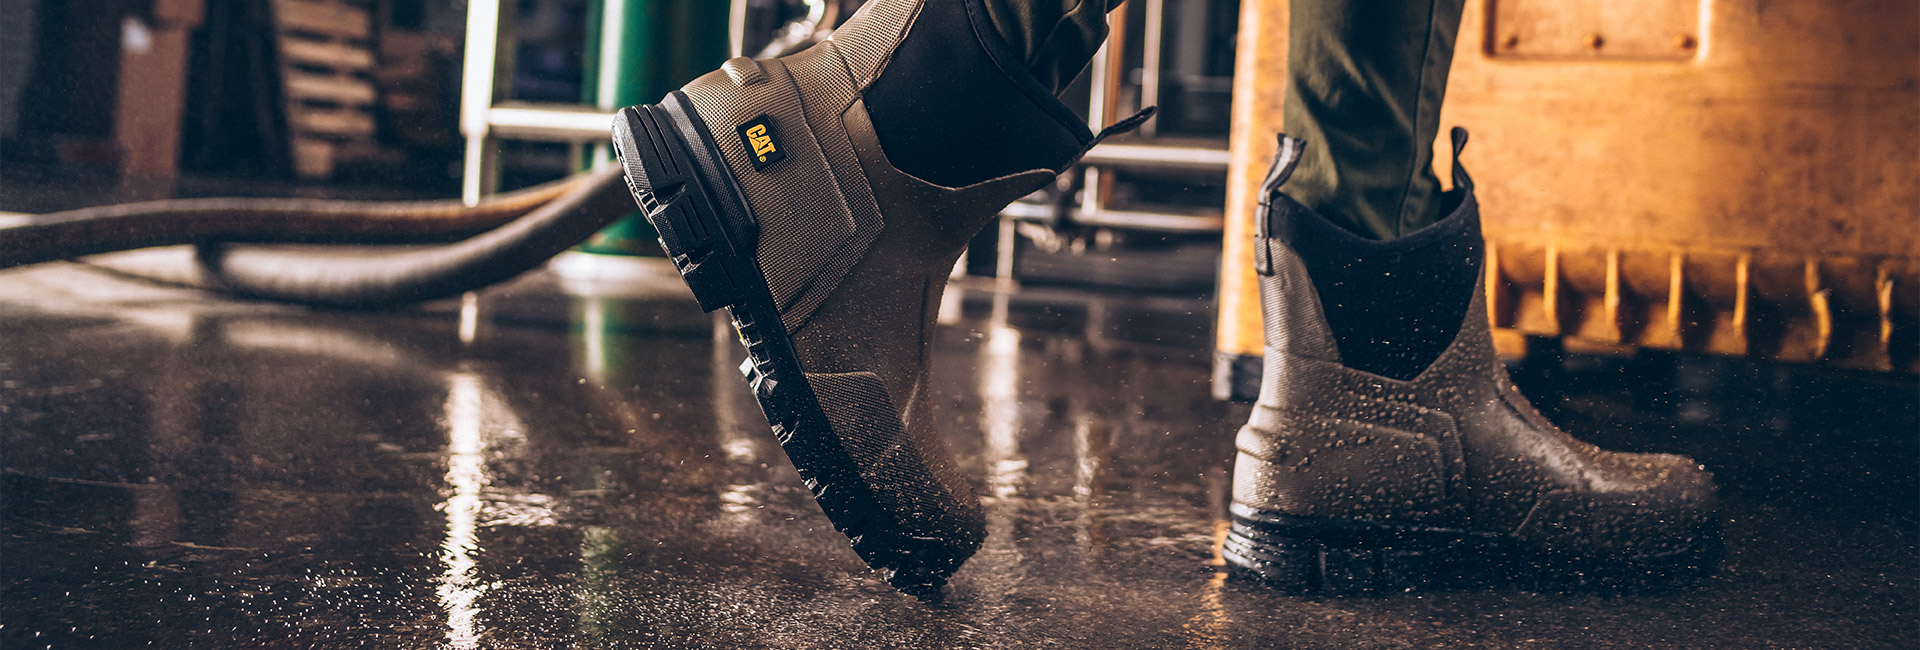 26df8fe81847 Caterpillar Work Boots - Comfortable Work Shoes